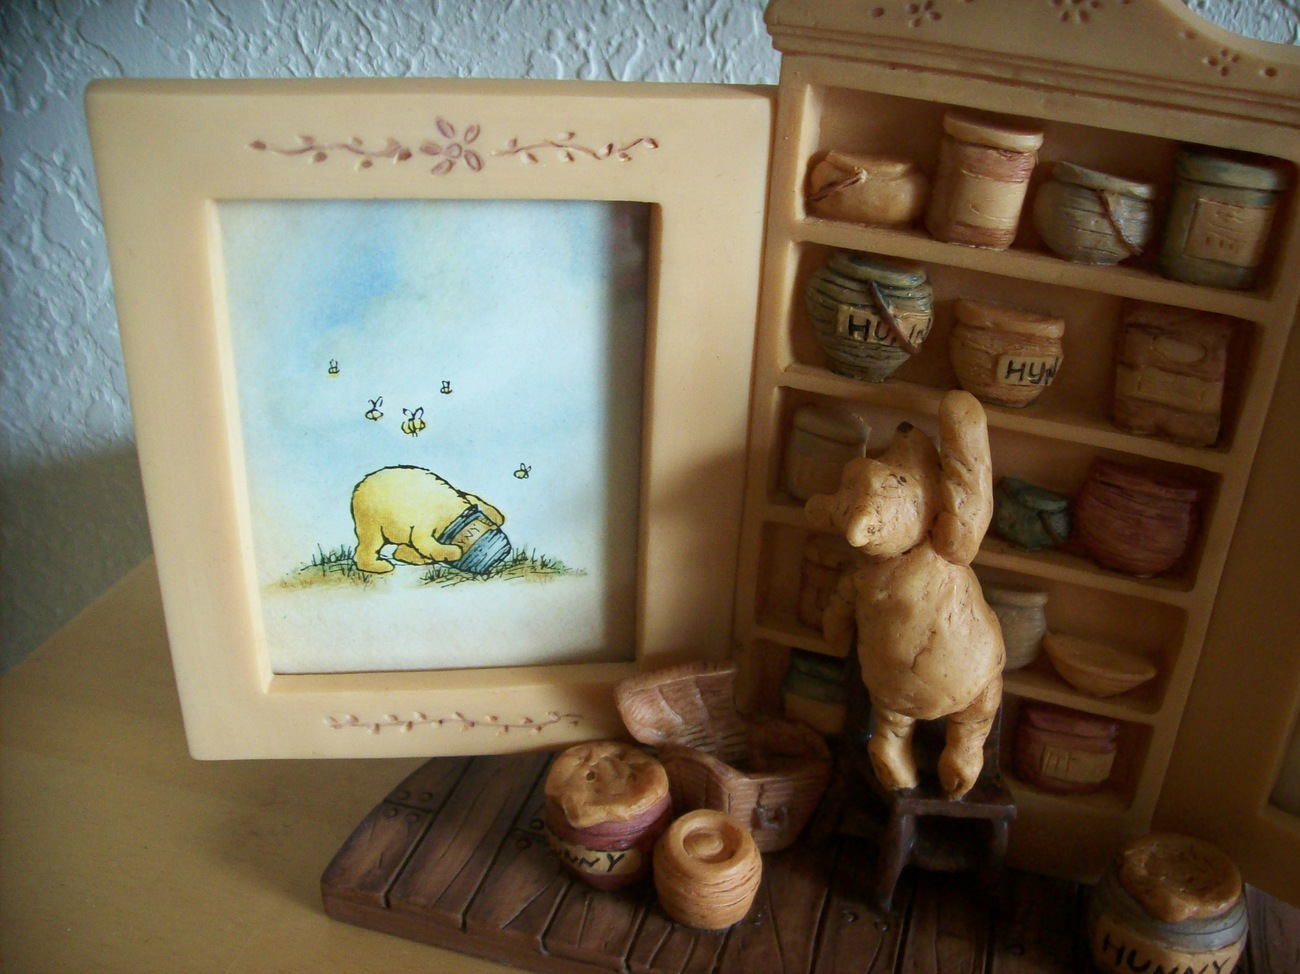 NEW!!! Disney Charpente Classic Winnie the Pooh Library Picture Frame